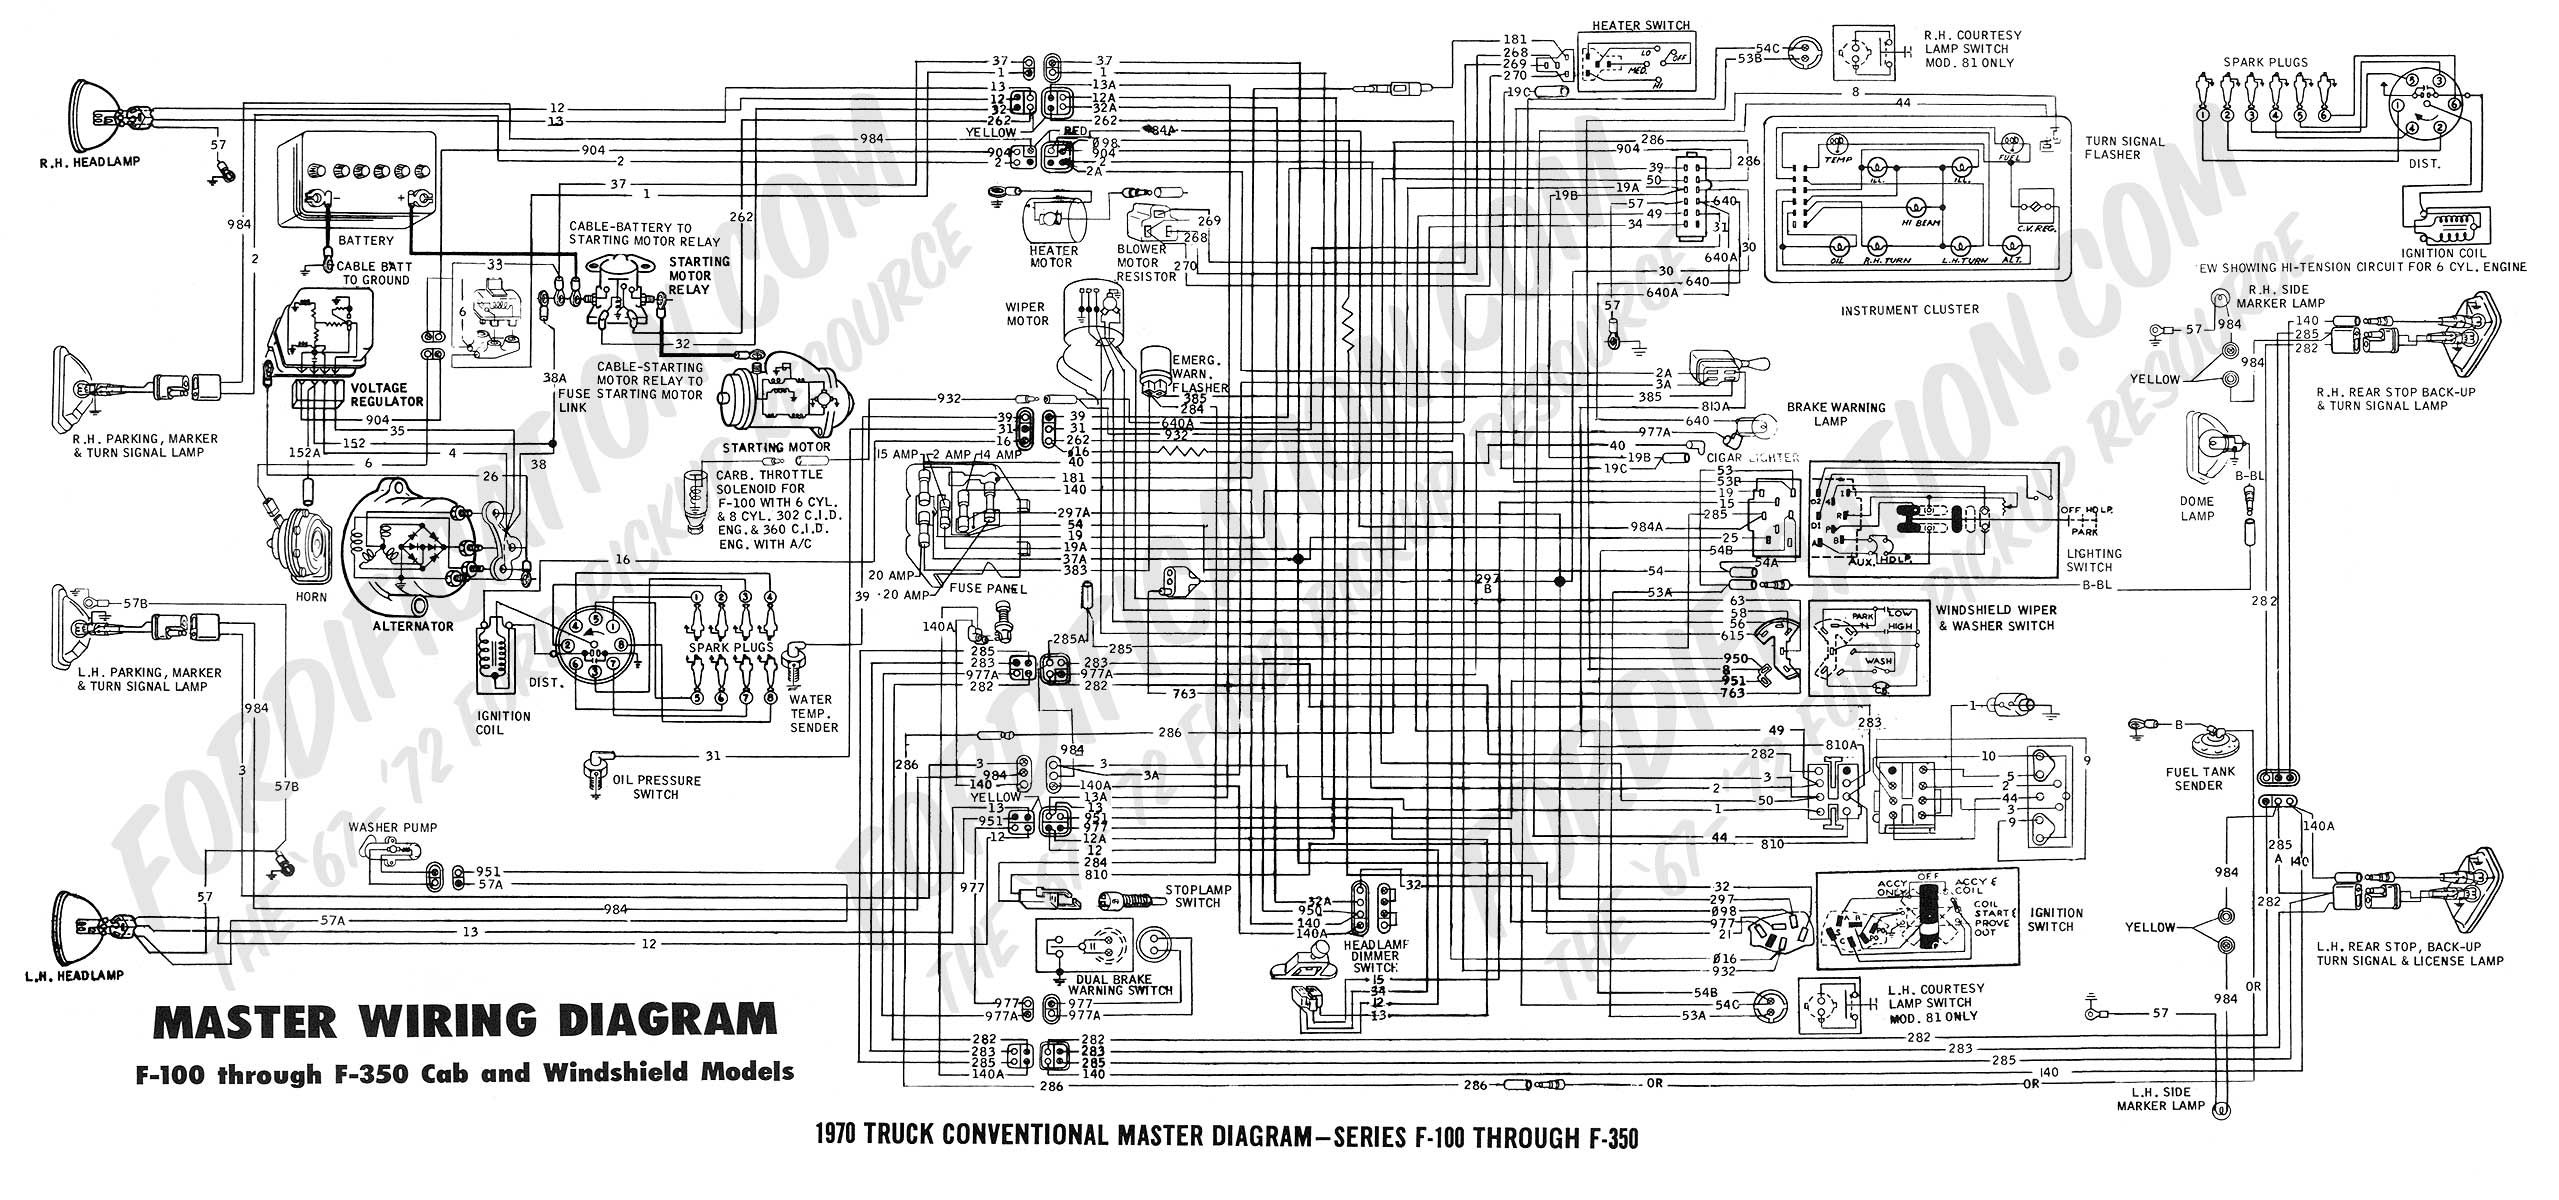 Nice Ford Harness Wiring Diagram 1988 Ford Ranger Wiring Harness Wiring Diagram1983 E350 Wiring Diagram Best Part Of Wiring Diagram Diagram Repair Manuals Ford